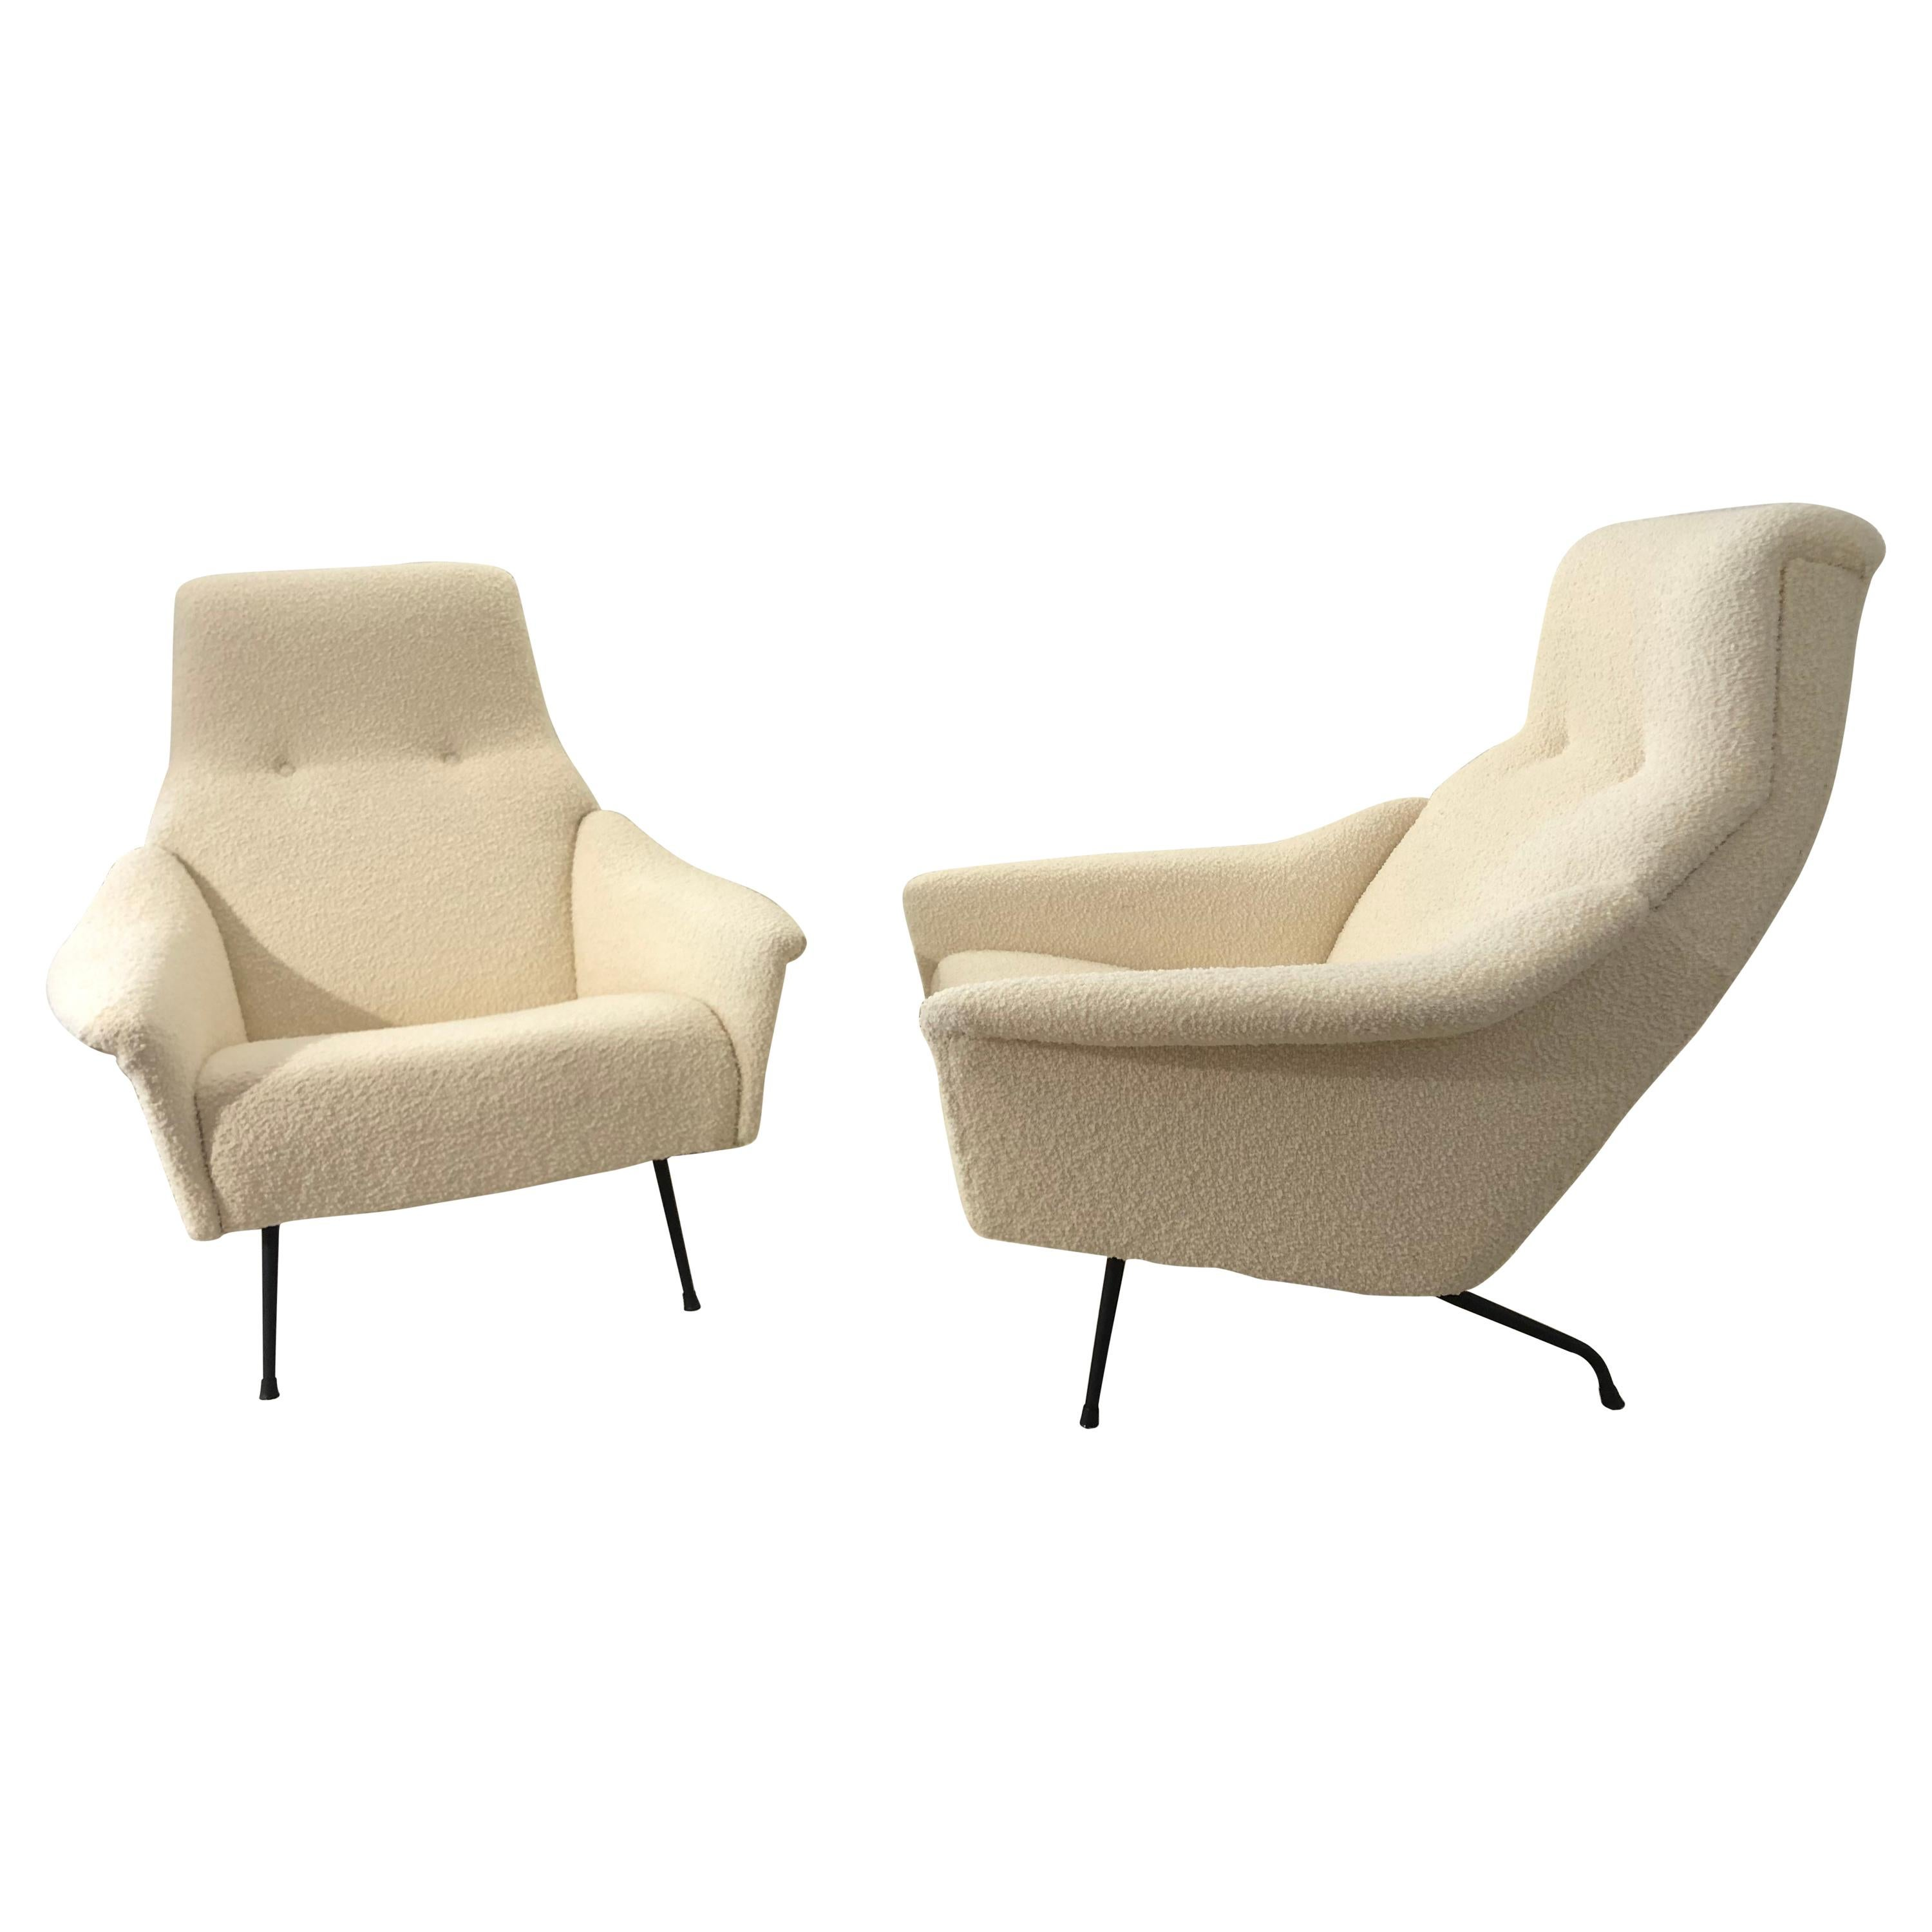 Pair of Armchairs by Guy Besnard